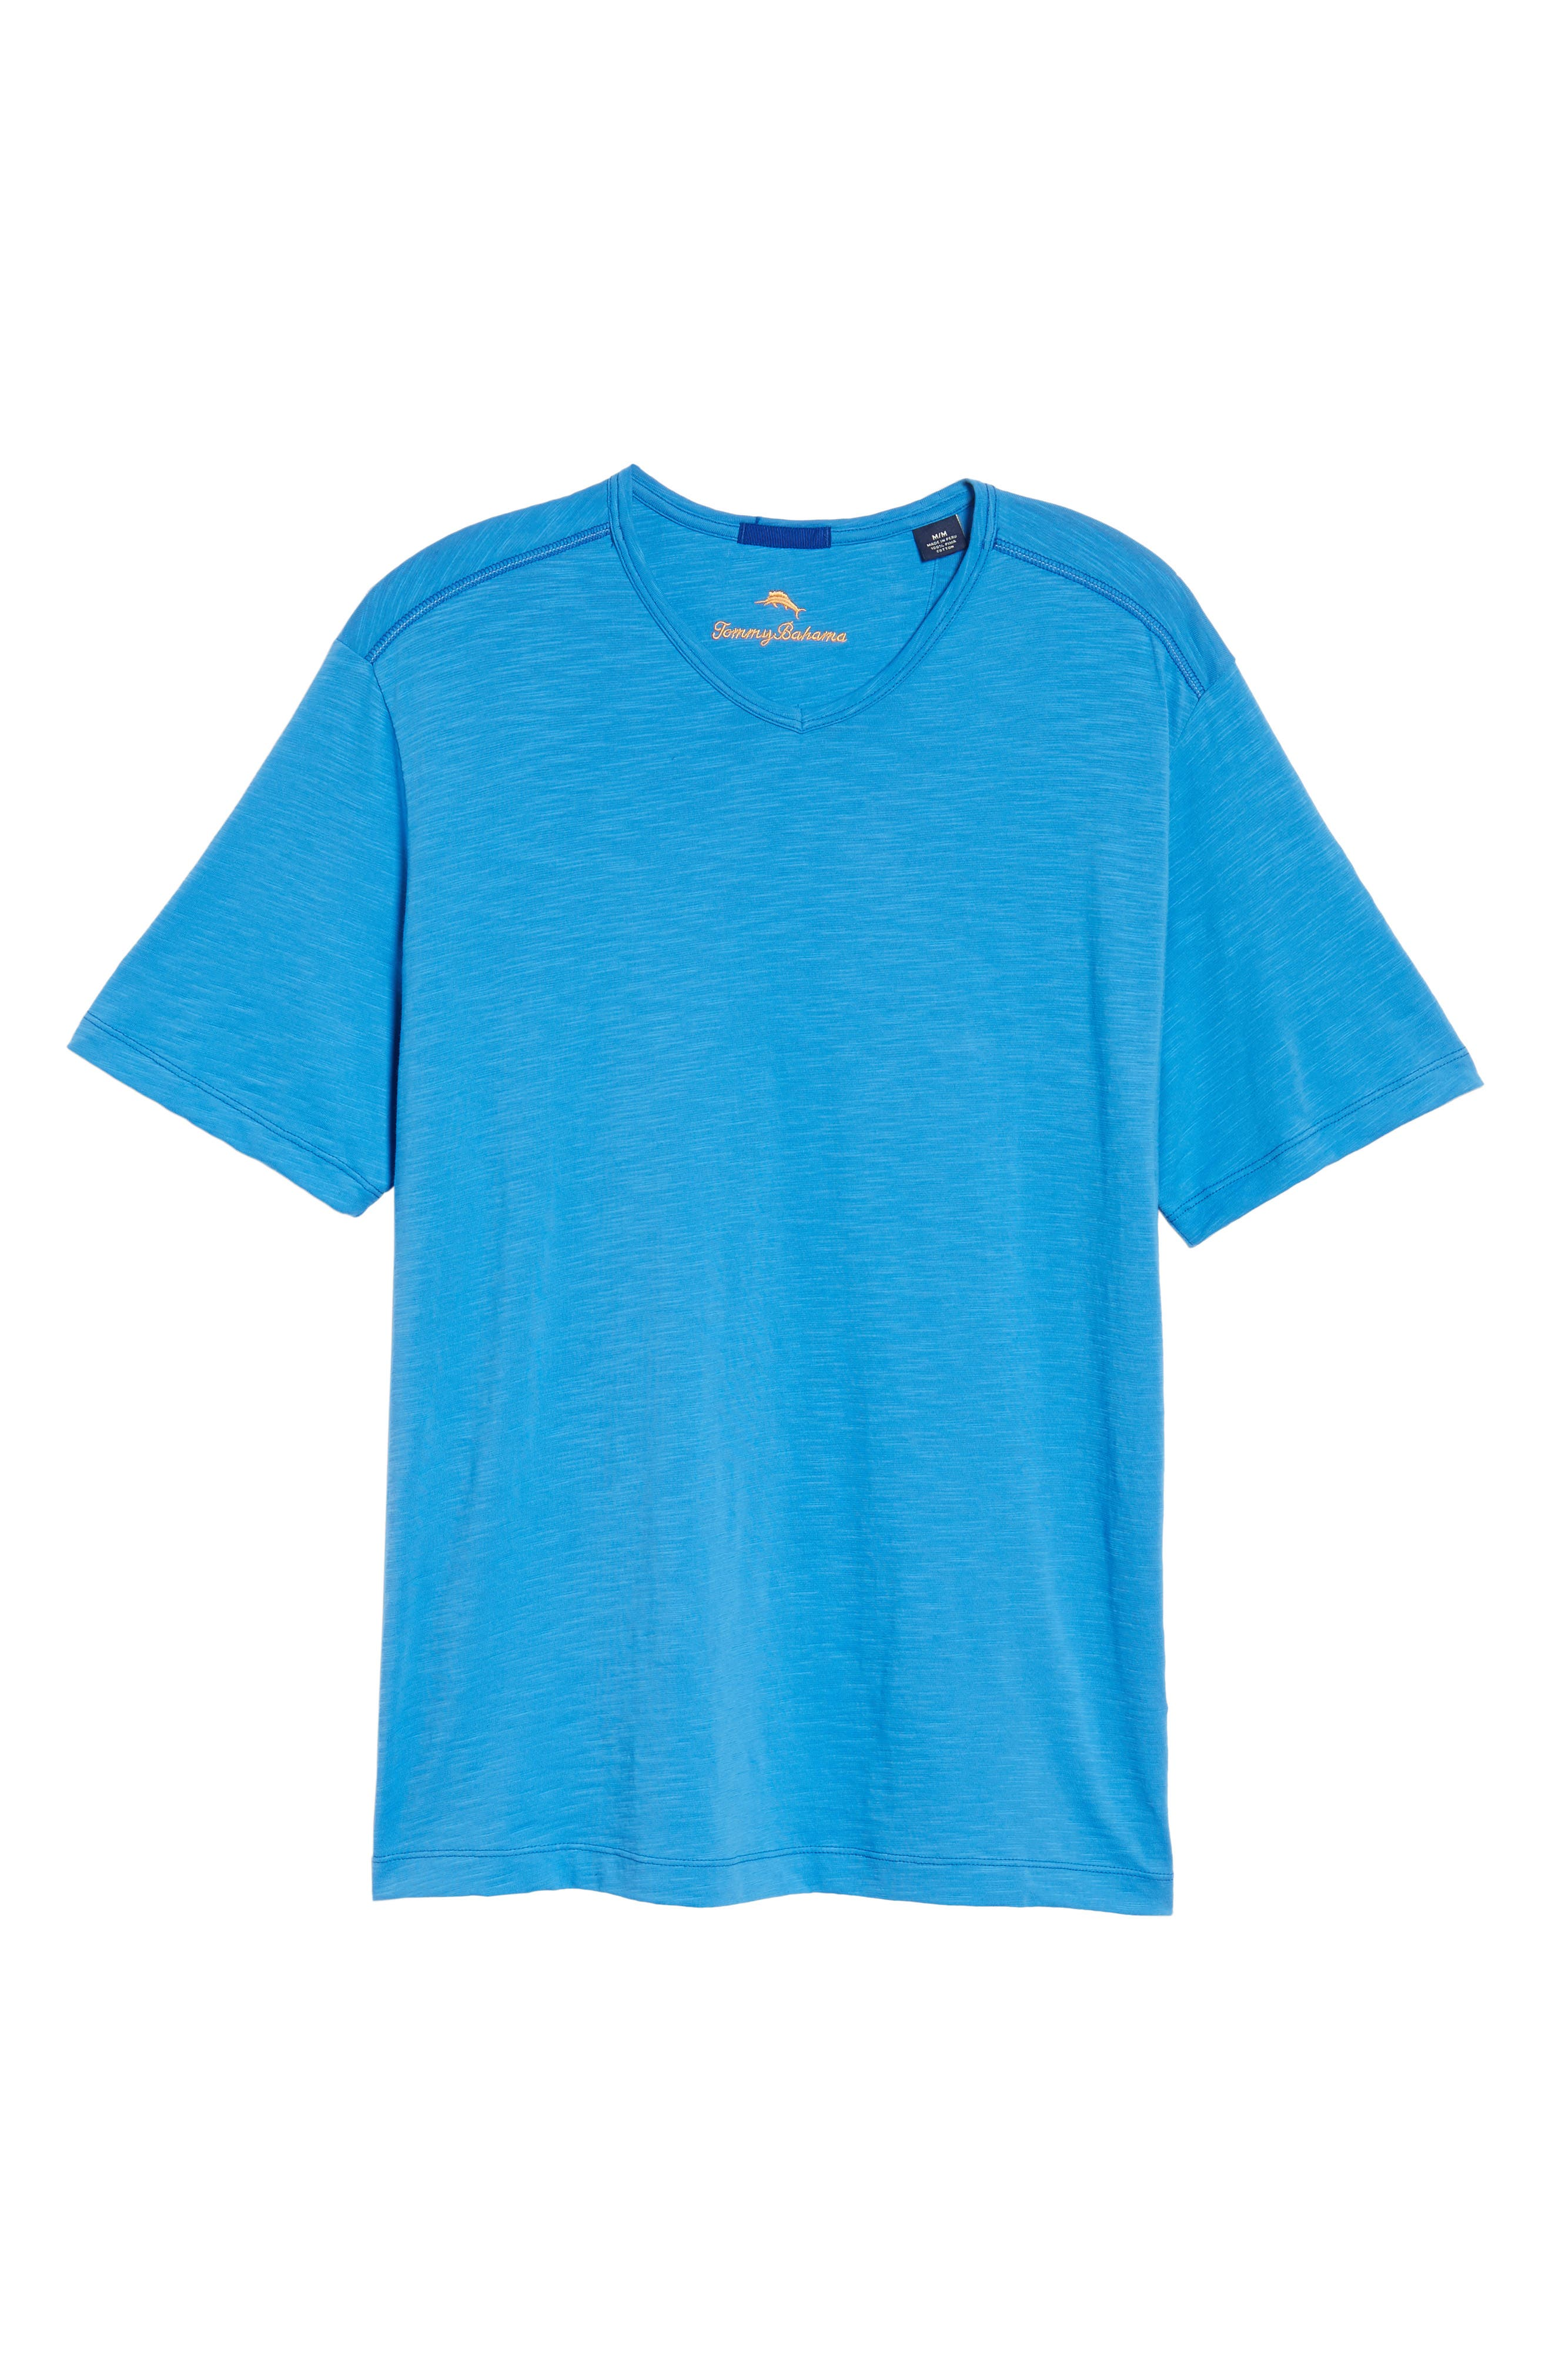 'Portside Player' Pima Cotton T-Shirt,                             Alternate thumbnail 6, color,                             401